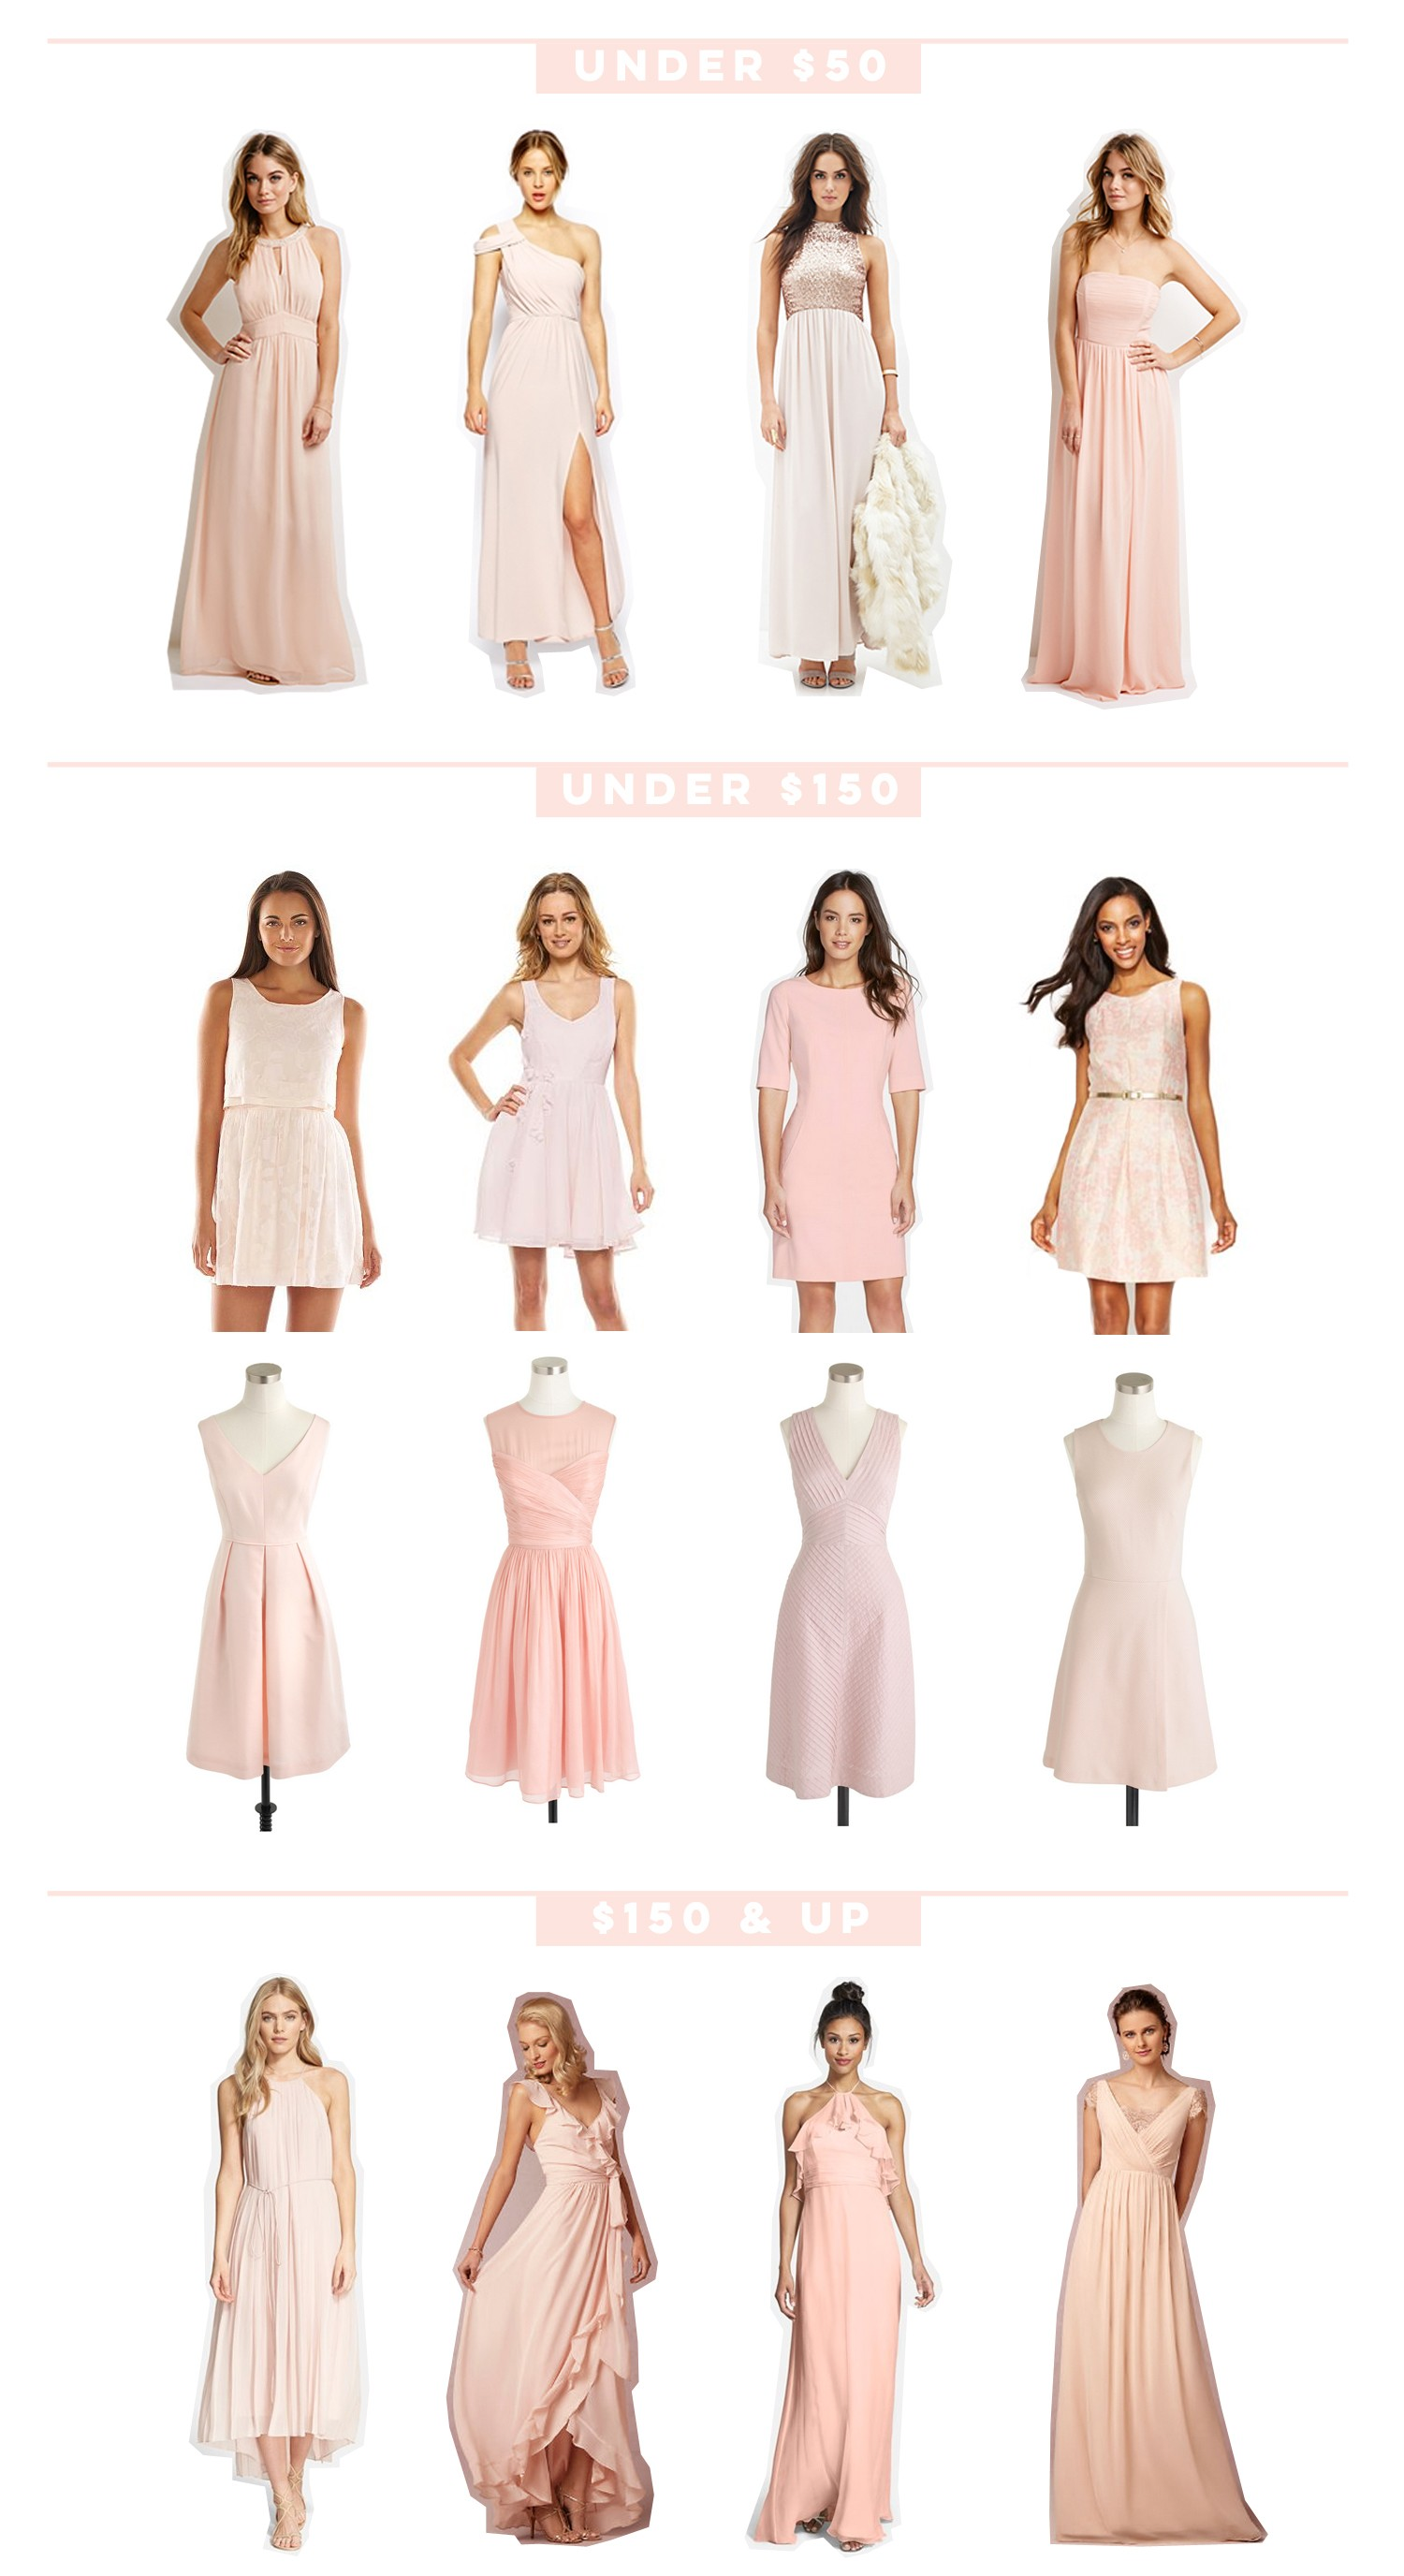 The Perfect Blush Pink Dress Snapshots My Thoughts A Lifestyle Blog By Ailee Petrovic